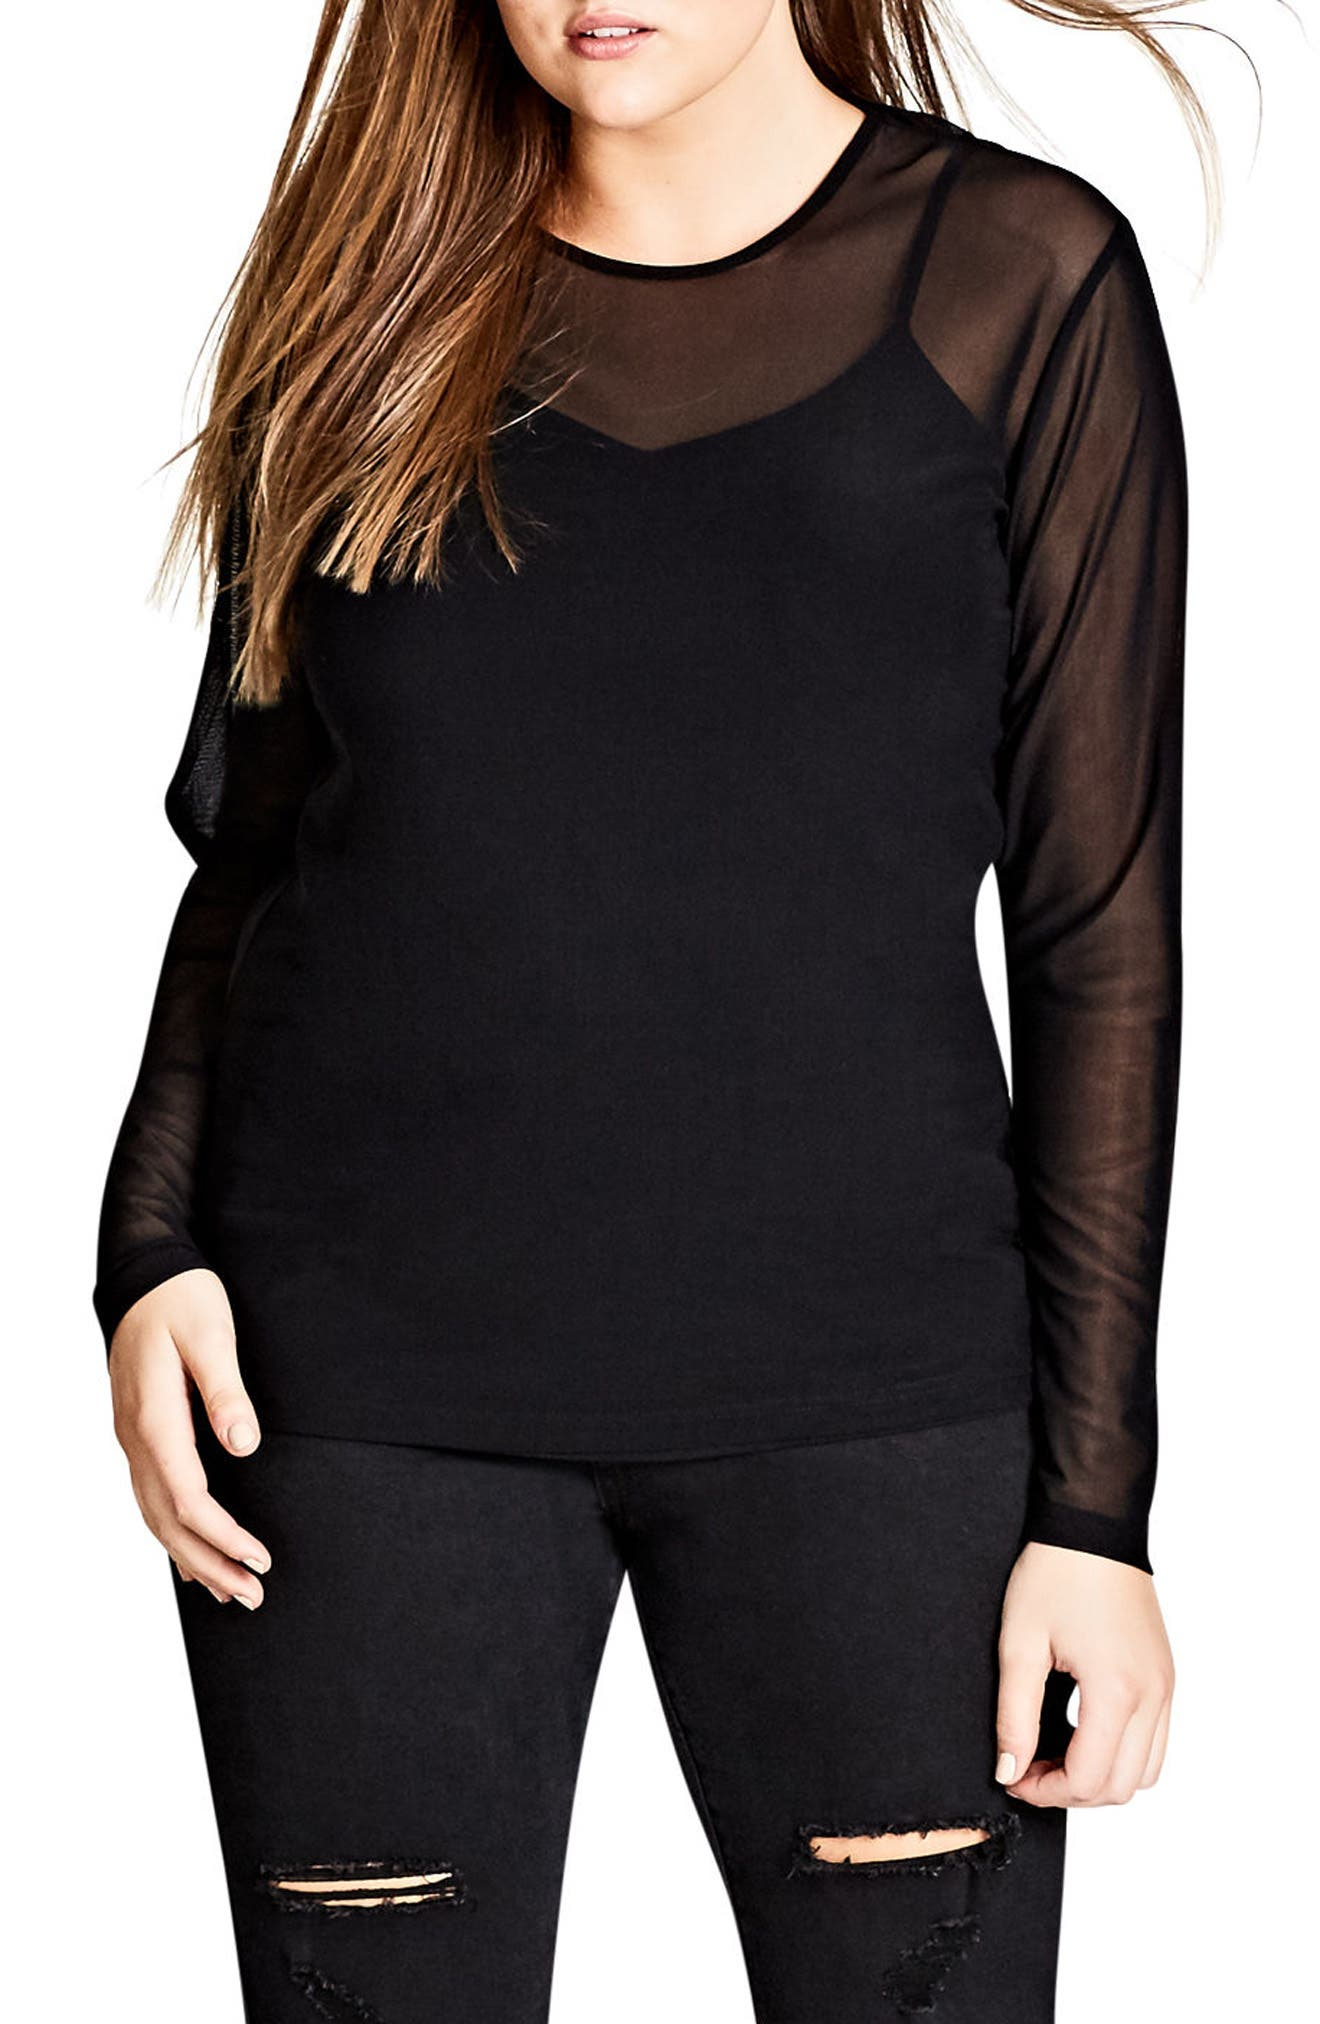 Main Image - City Chic Sexy Mesh Top (Plus Size)